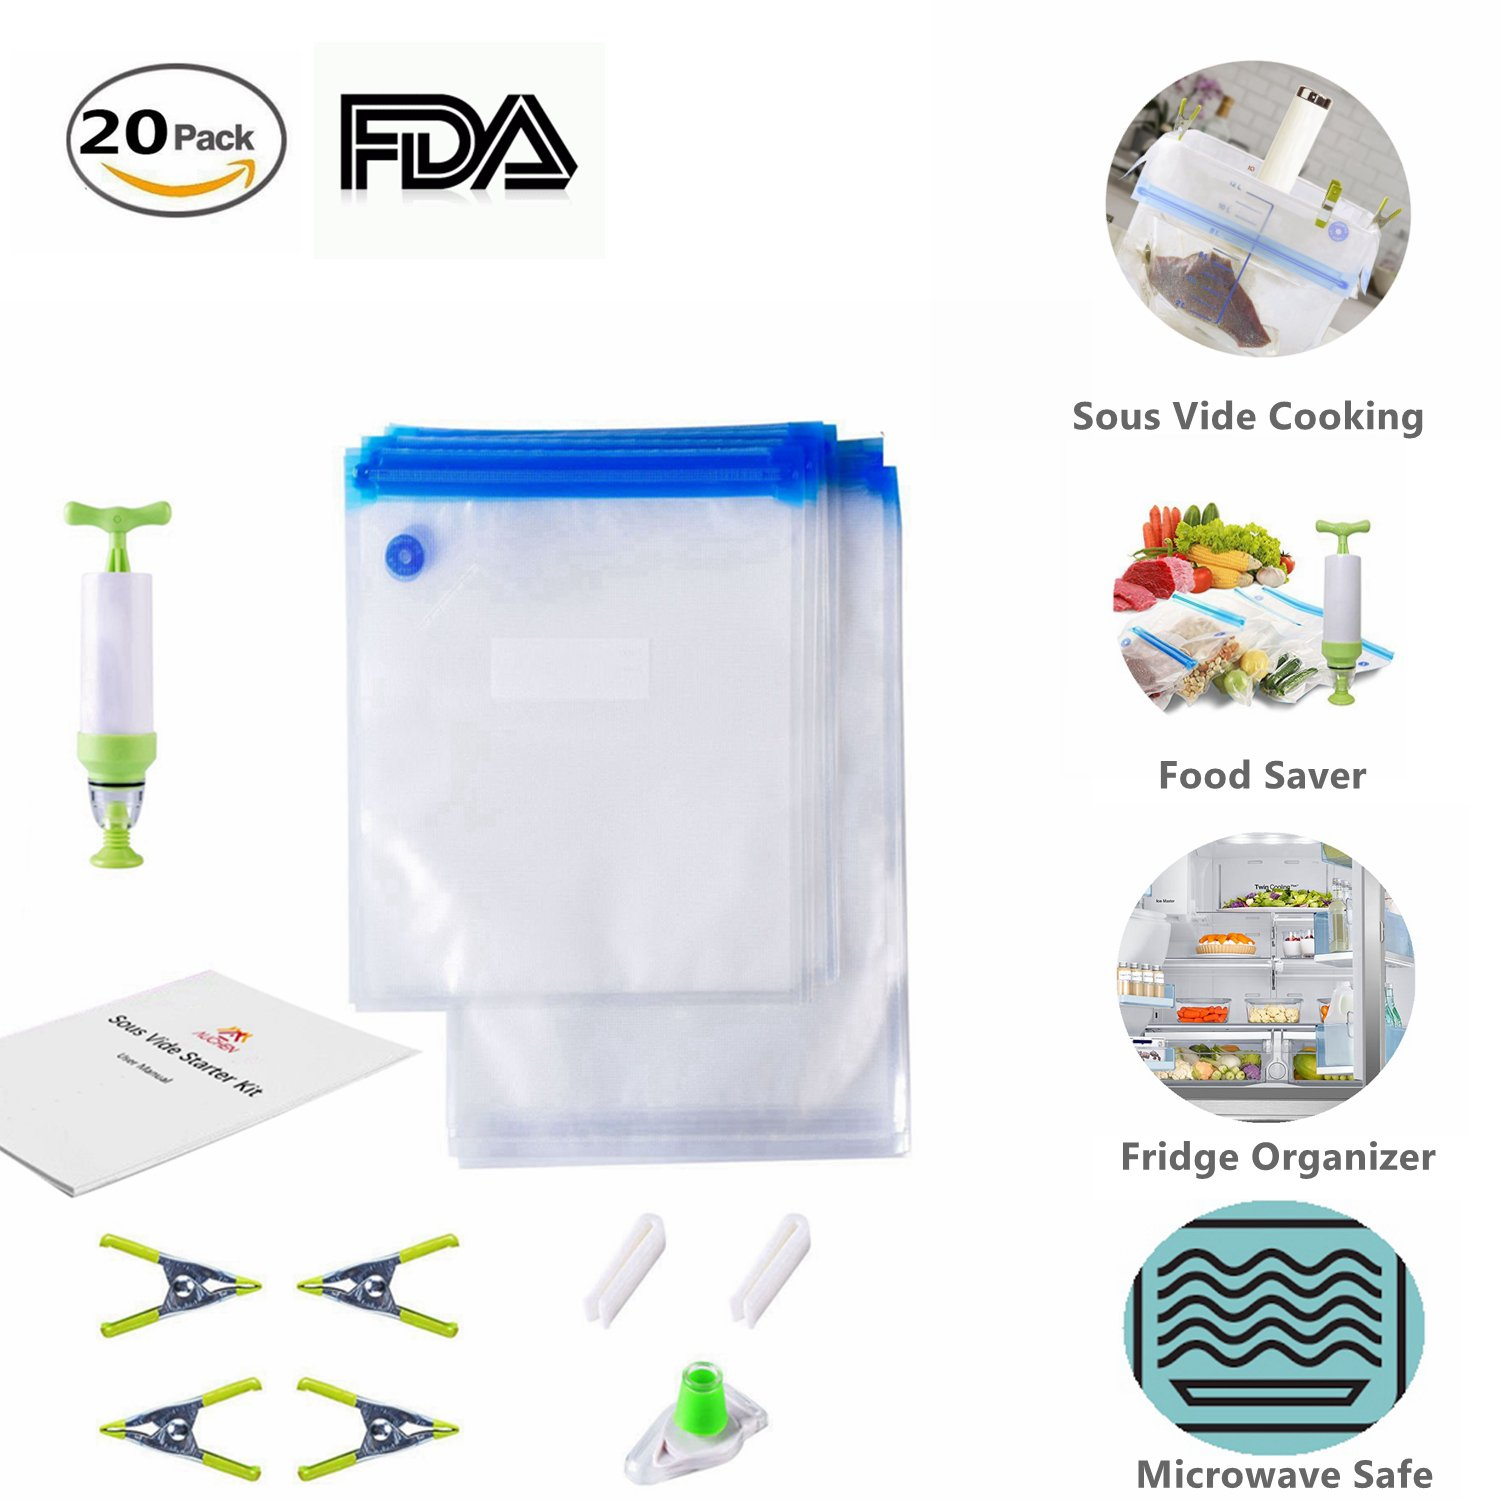 Sous Vide Bags Kit for Anova and Joule Cookers - 20 BPA Free Food Vacuum Sealed Bags, 1 Hand Pump, 2 Bag Sealing Clips and 4 Sous Vide Clips, Practical for Food Storage & Sous Vide Cooking